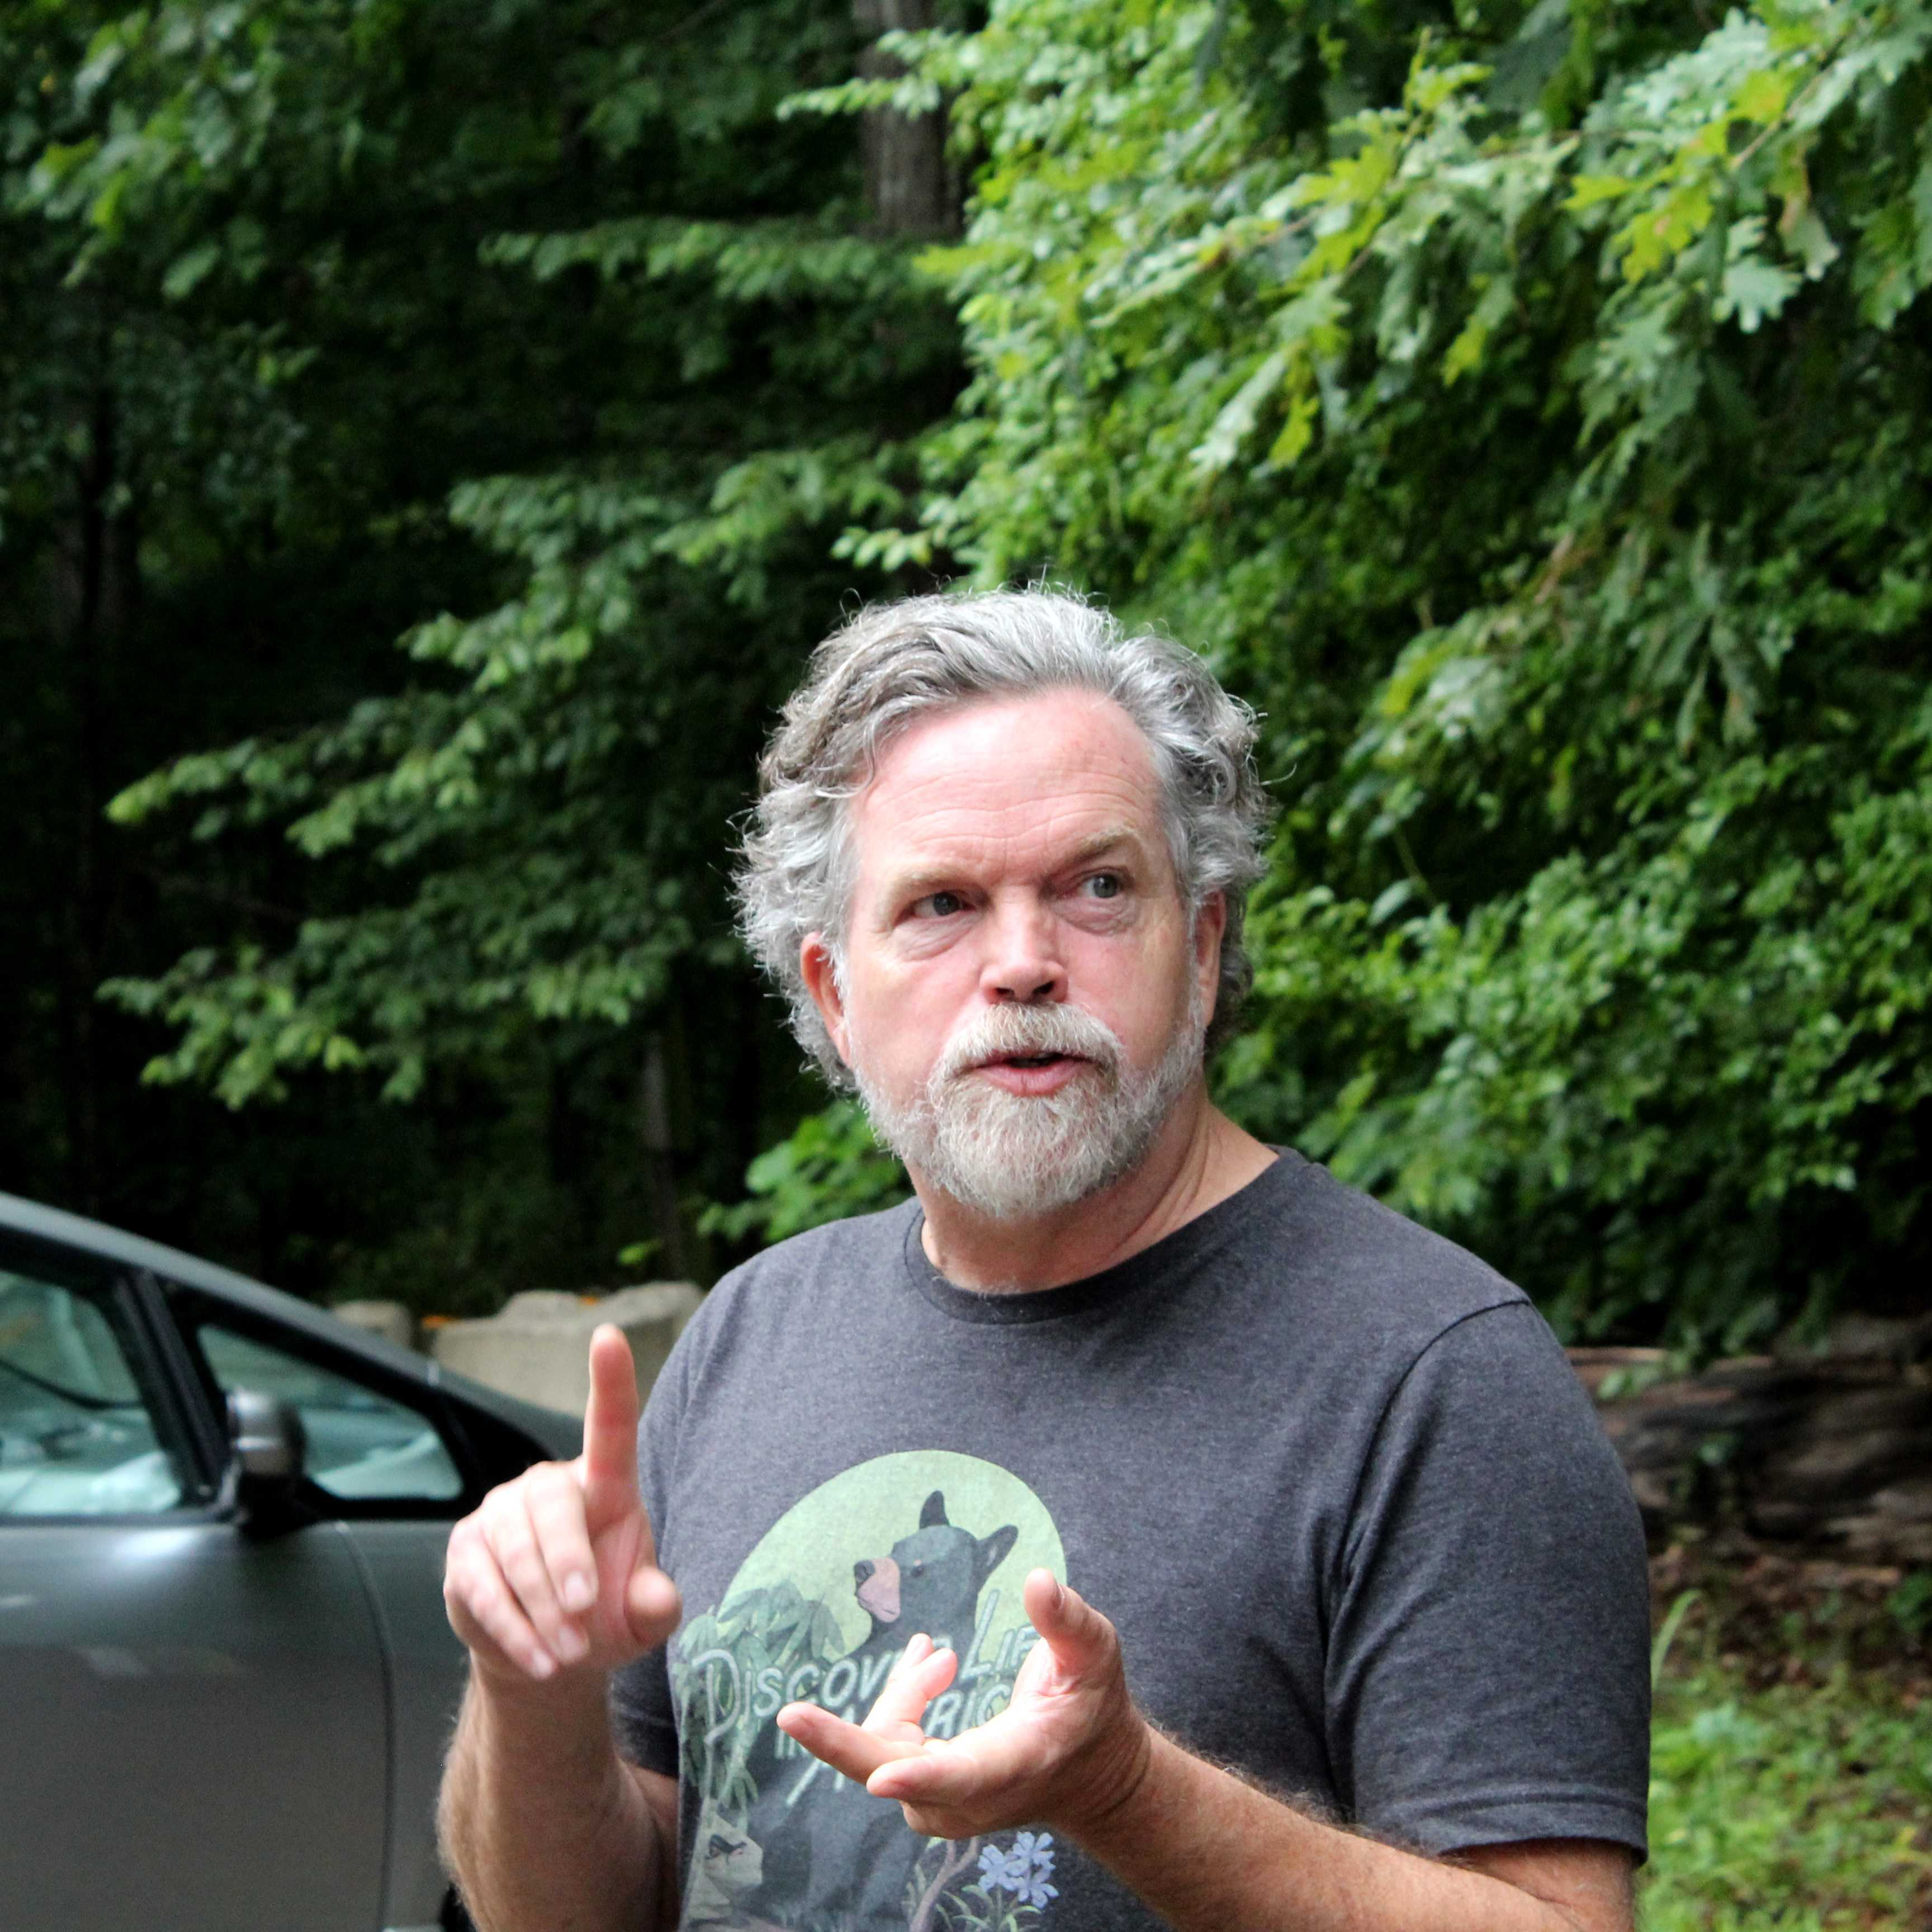 Todd Witcher, executive director of Discover Life in America, educates community scientists about how to collect and identify species during a bioblitz. Photo courtesy of Xavier Reyes.